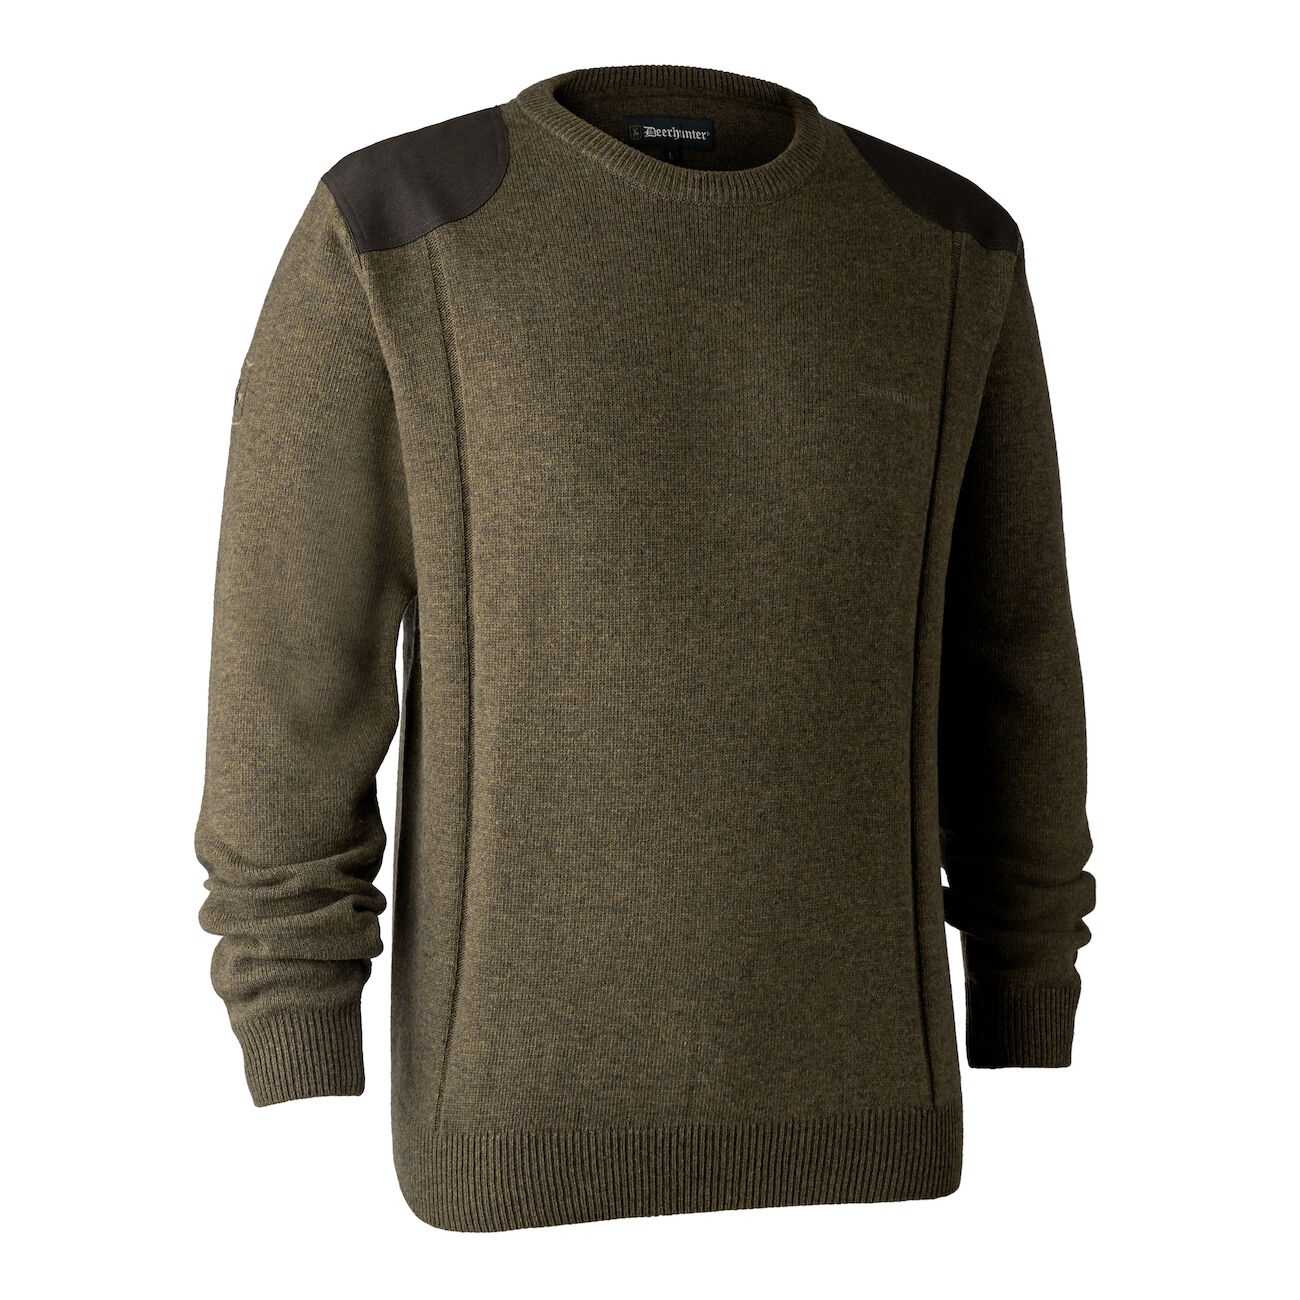 Deerhunter Sheffield Knit with O-Neck - Cypress